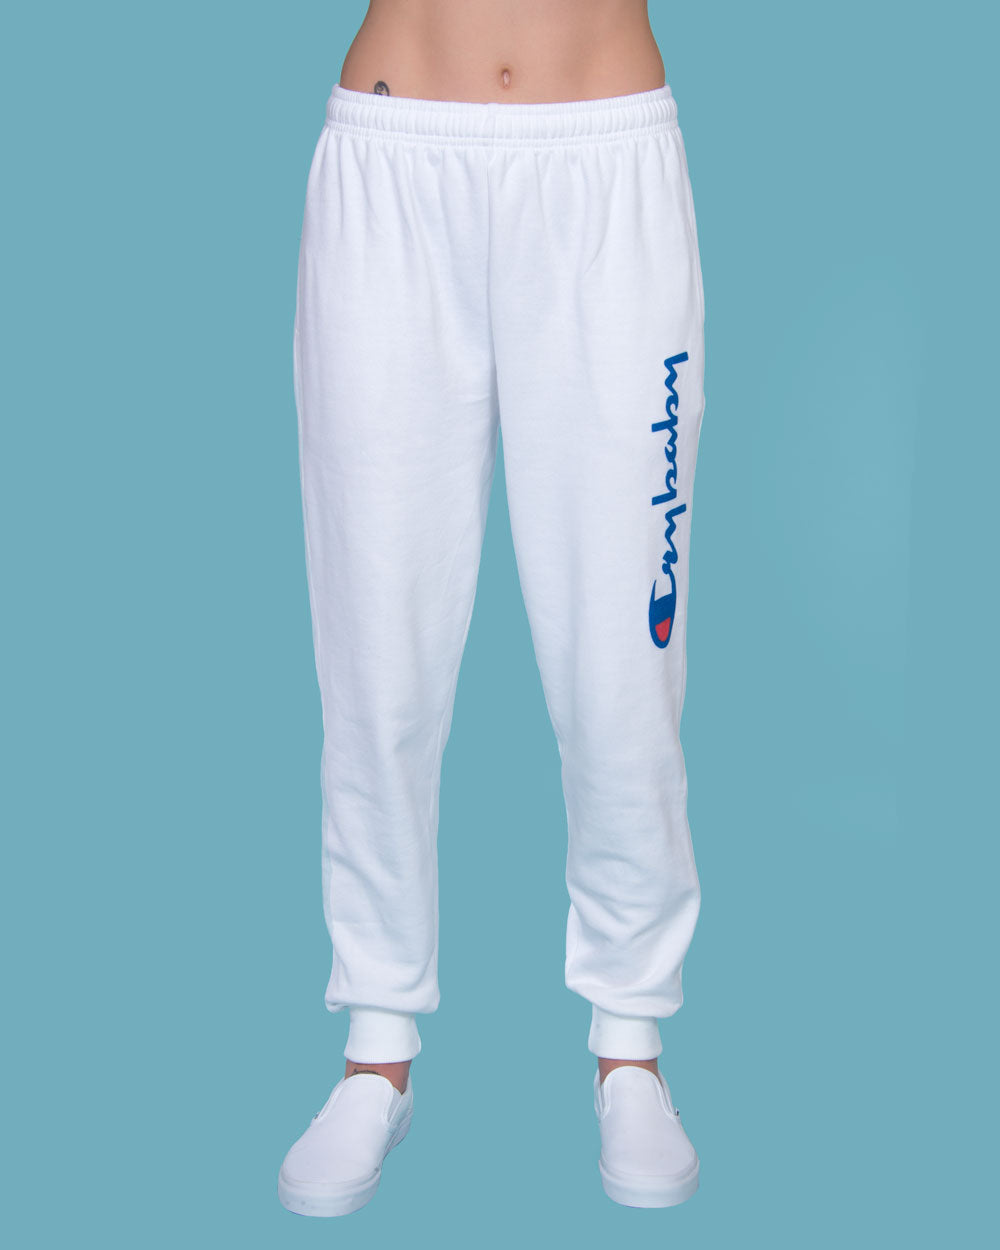 CRYBABY SWEATPANTS